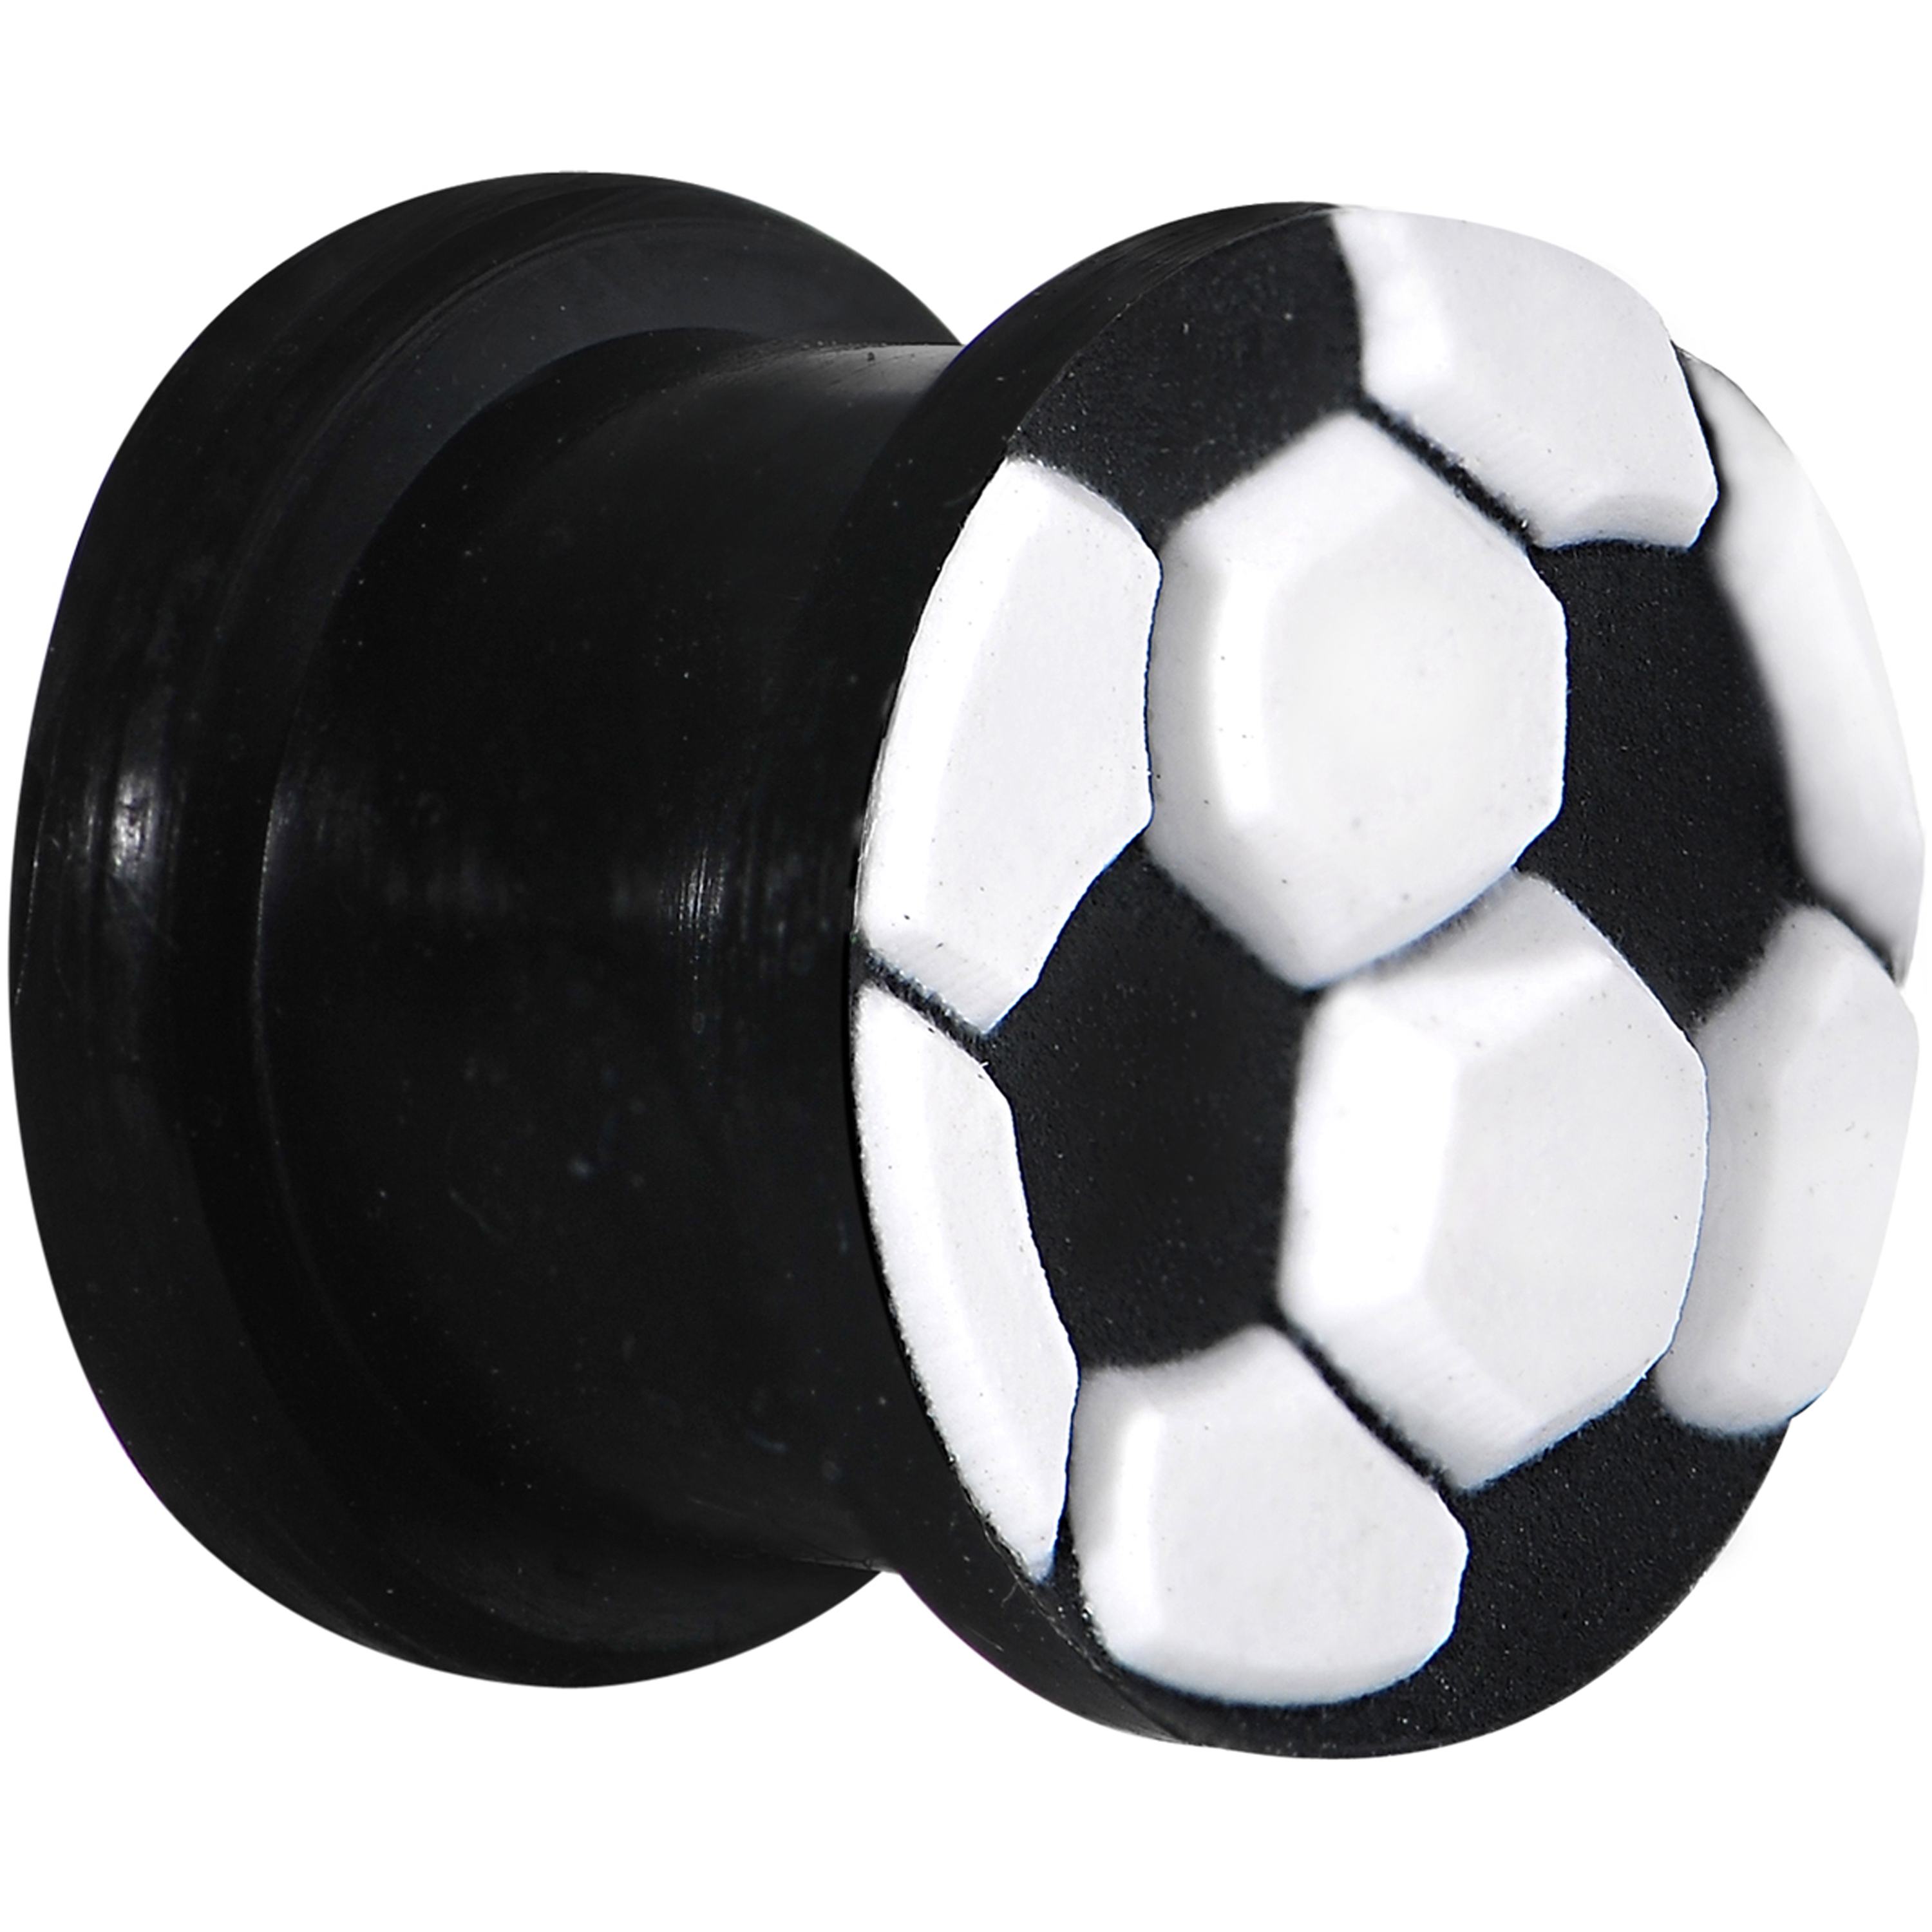 "1/2"" Silicone Black and White Soccer Ball Saddle Plug (1 Piece)"